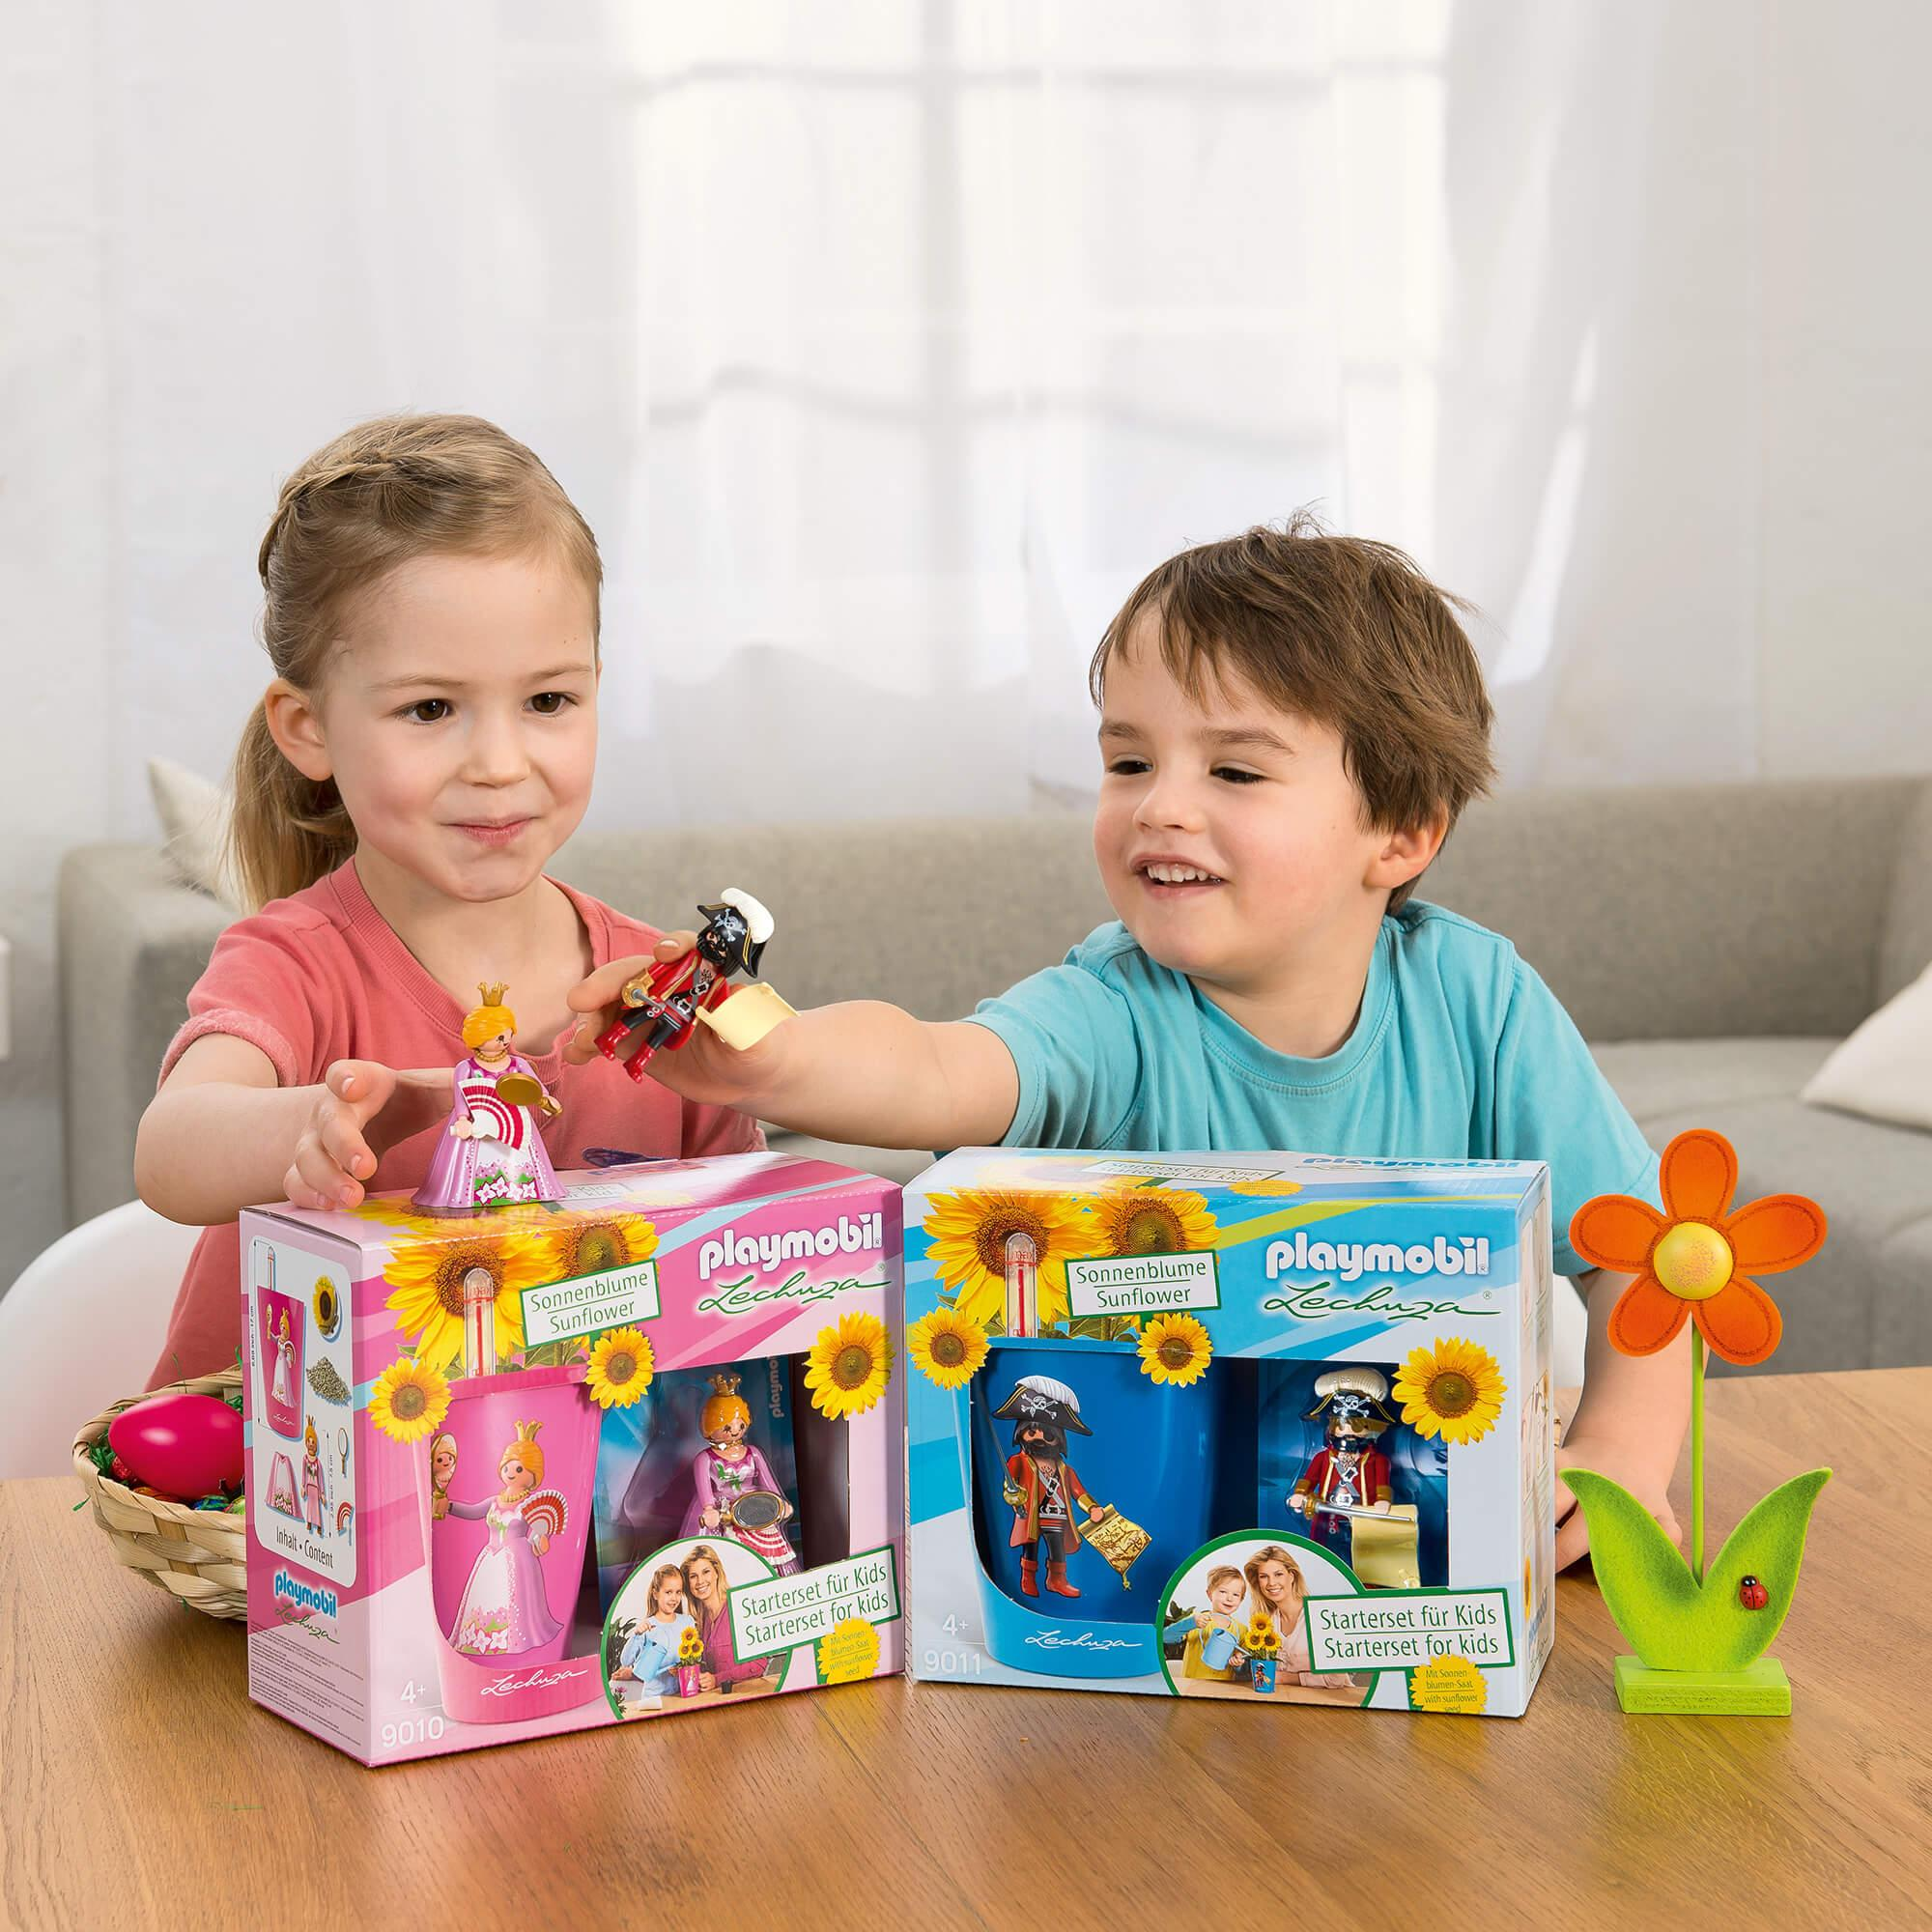 le_starter-set-fuer-kids_product_addi_01